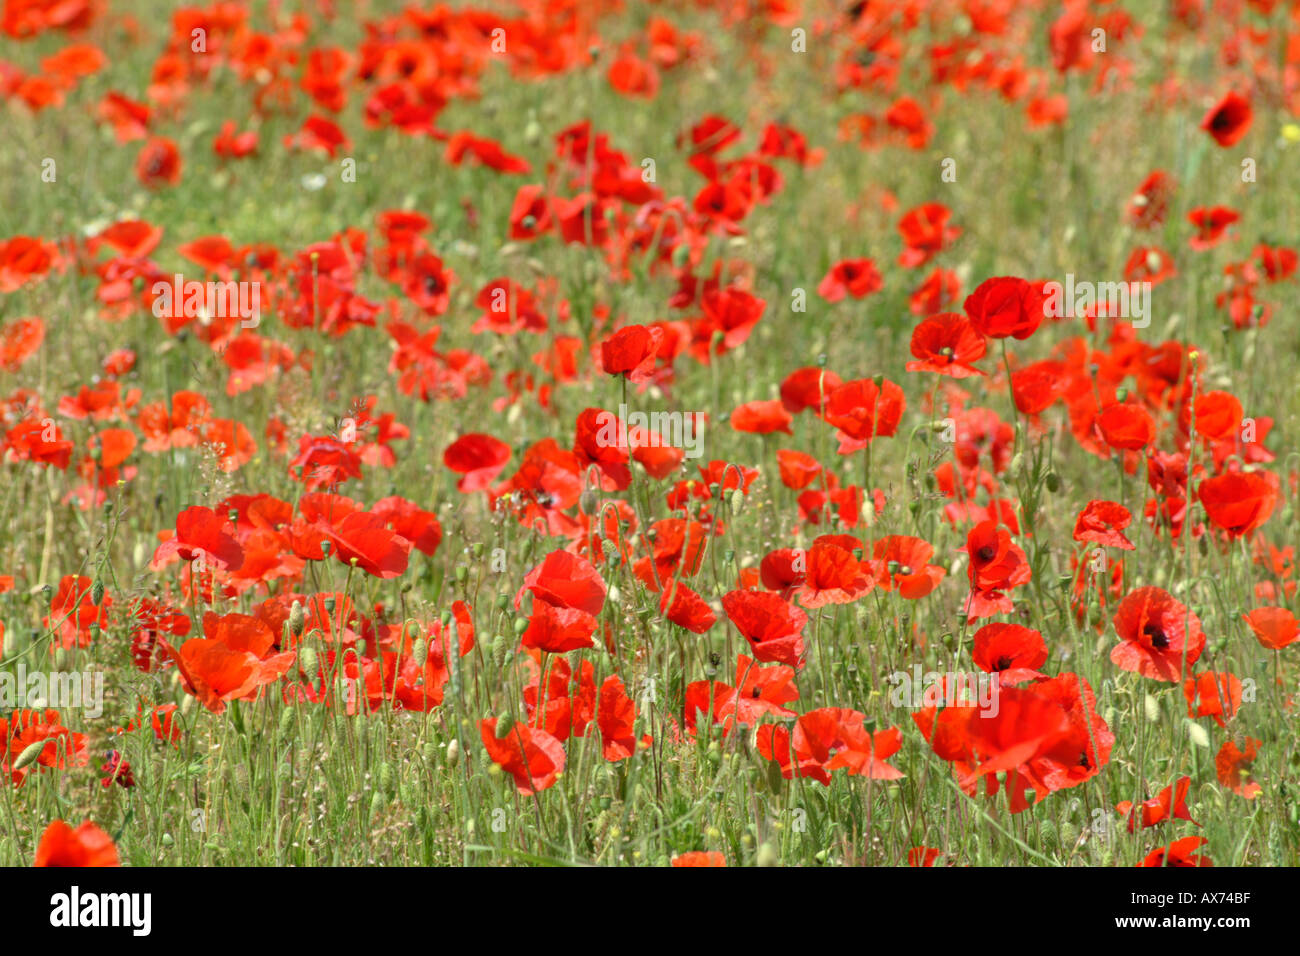 Field of Poppies Flowering near Freshwater Isle of Wight Southern England UK - Stock Image